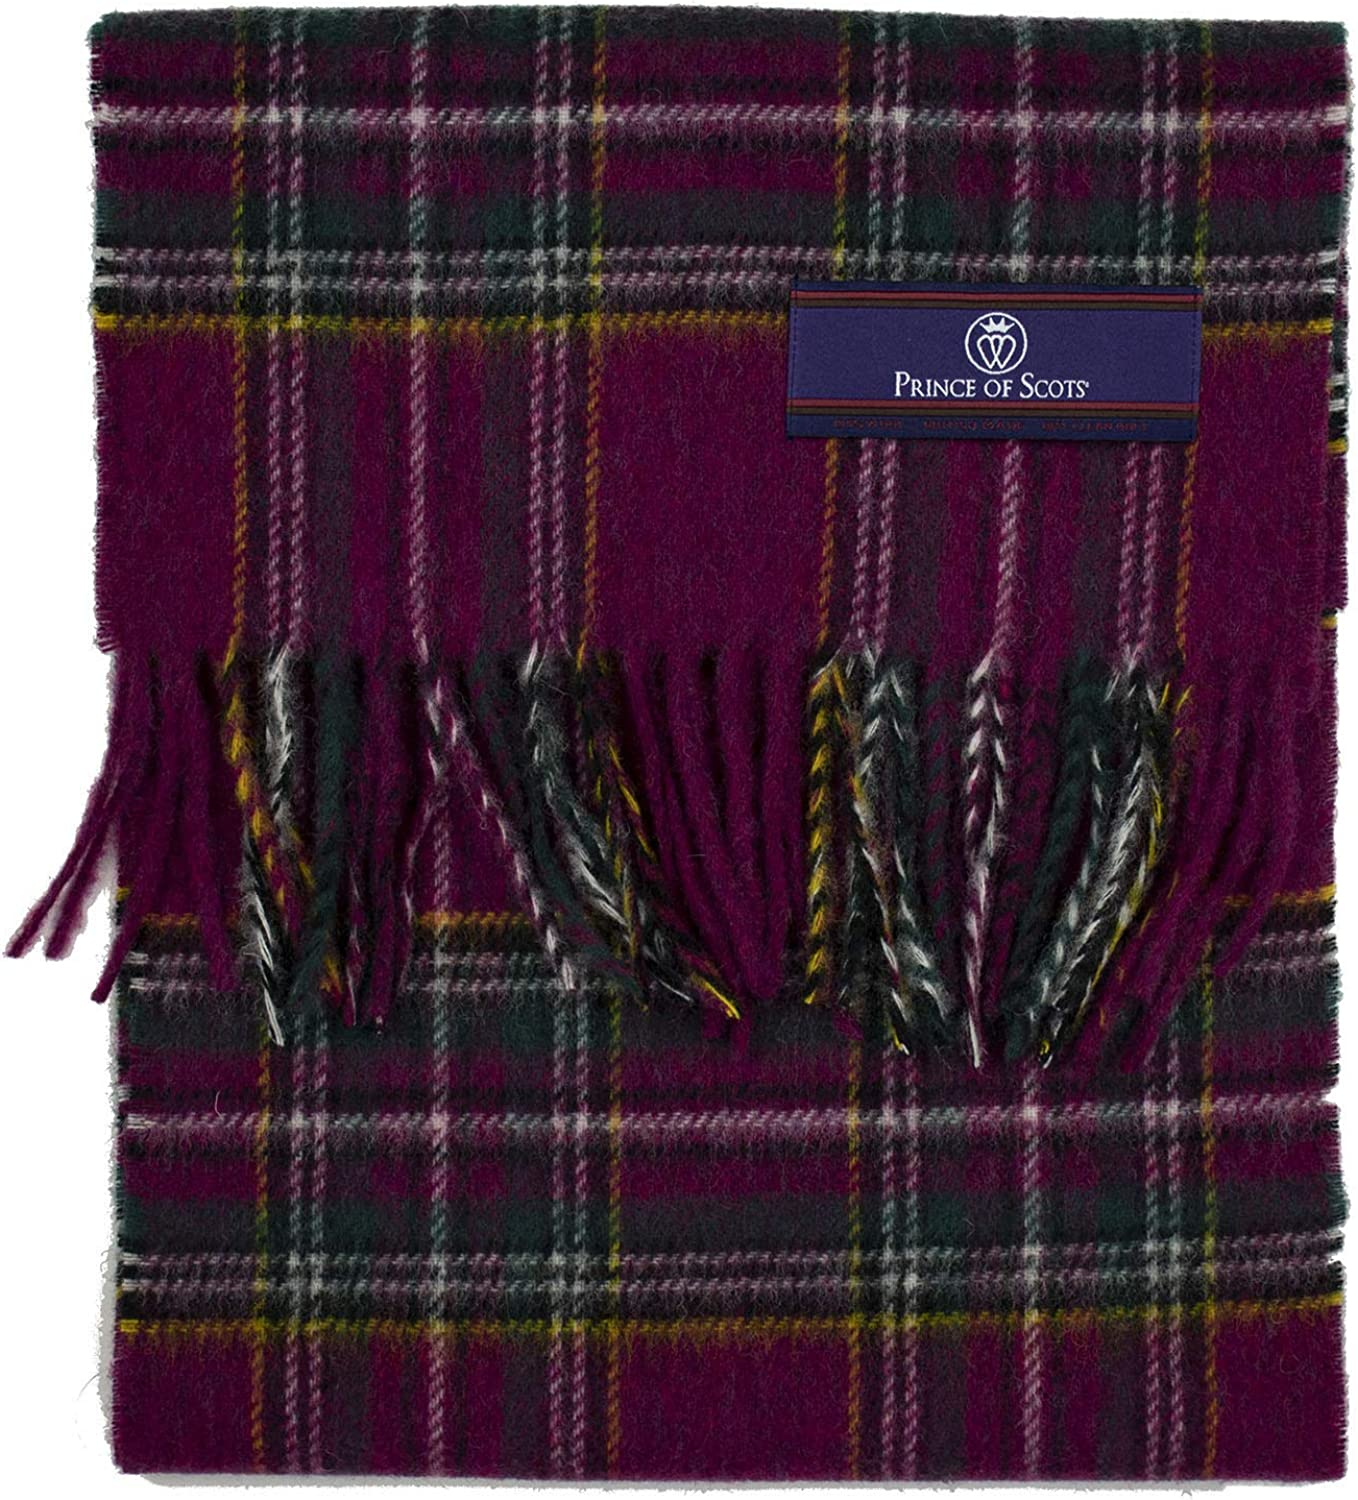 Prince of Tucson Mall Scots Heritage Plaid Scarf Wool Merino Fringed Reservation